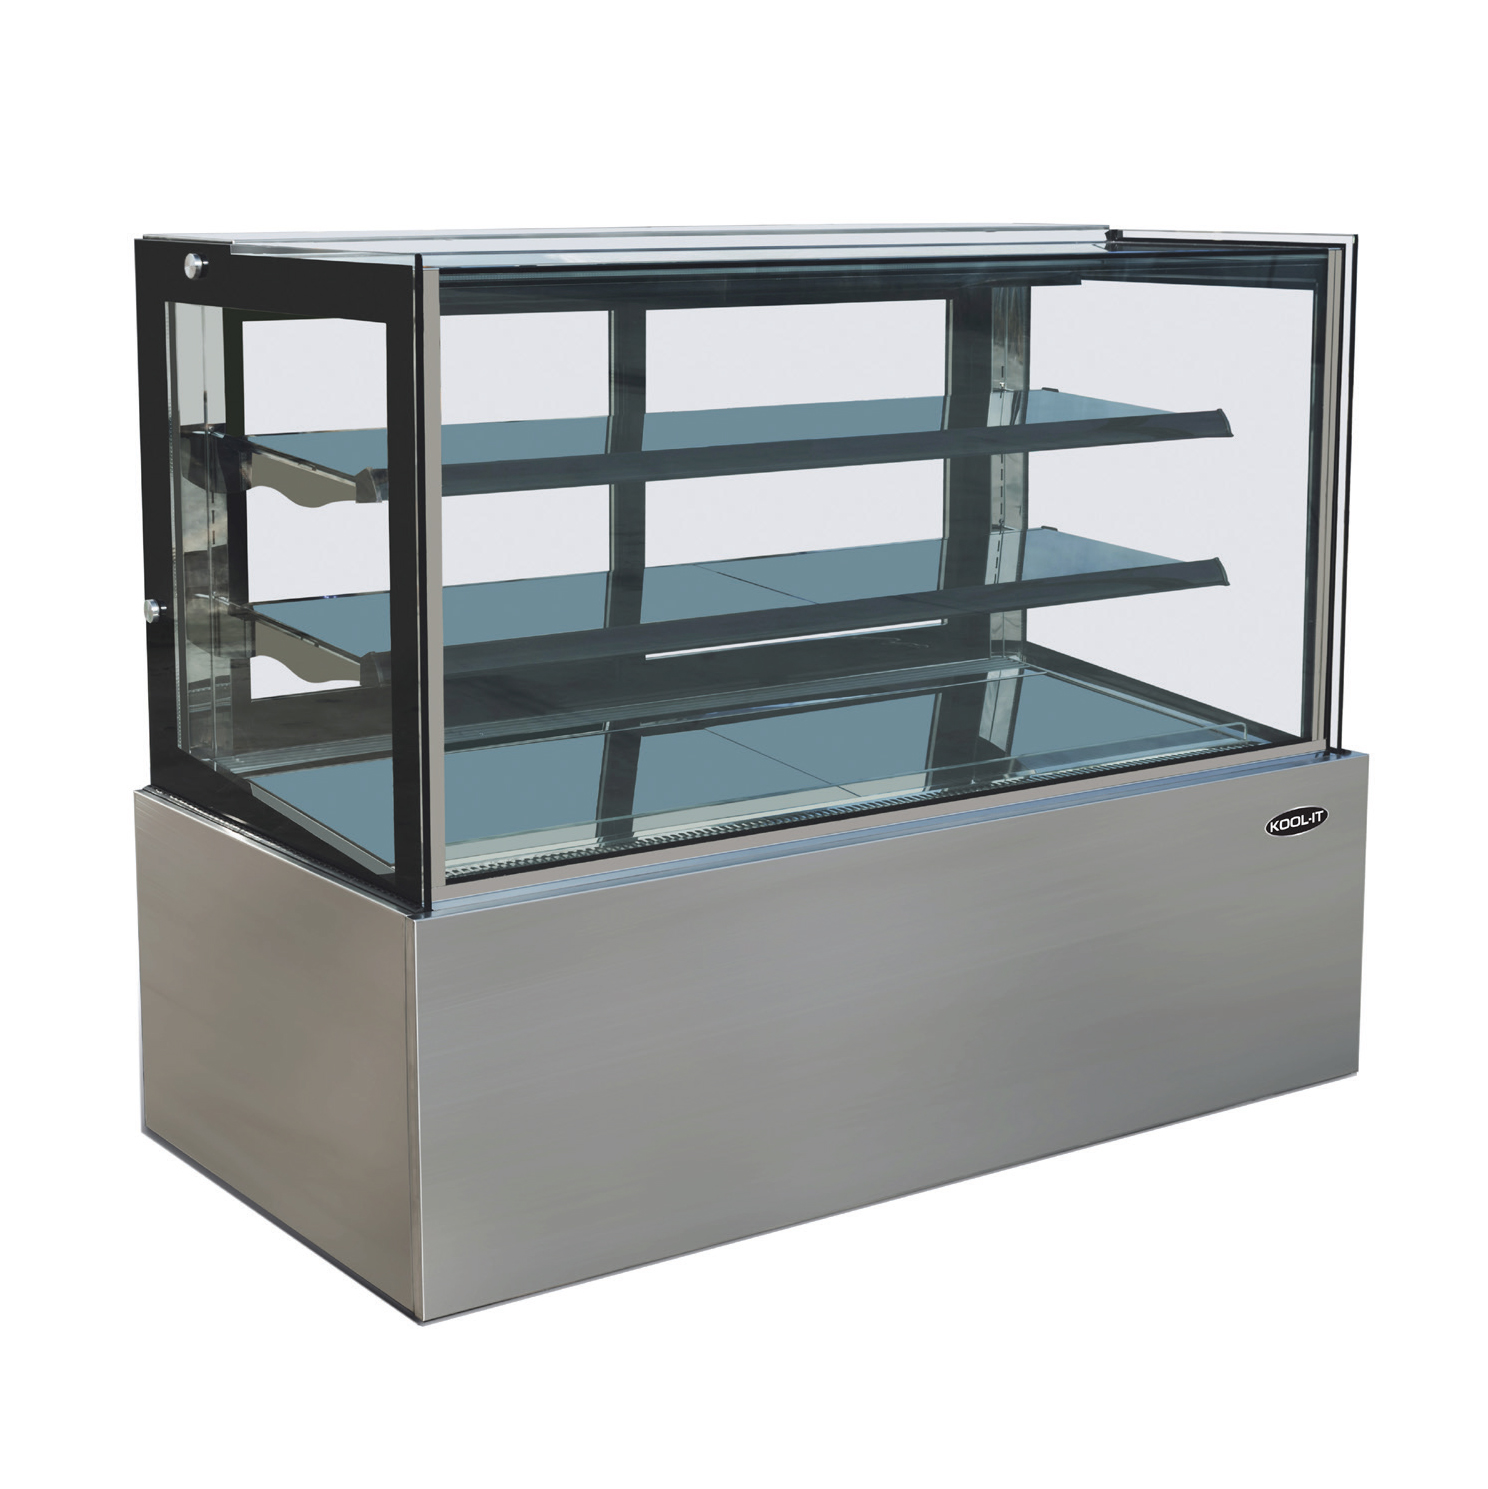 MVP KBF-36D display case, non-refrigerated bakery